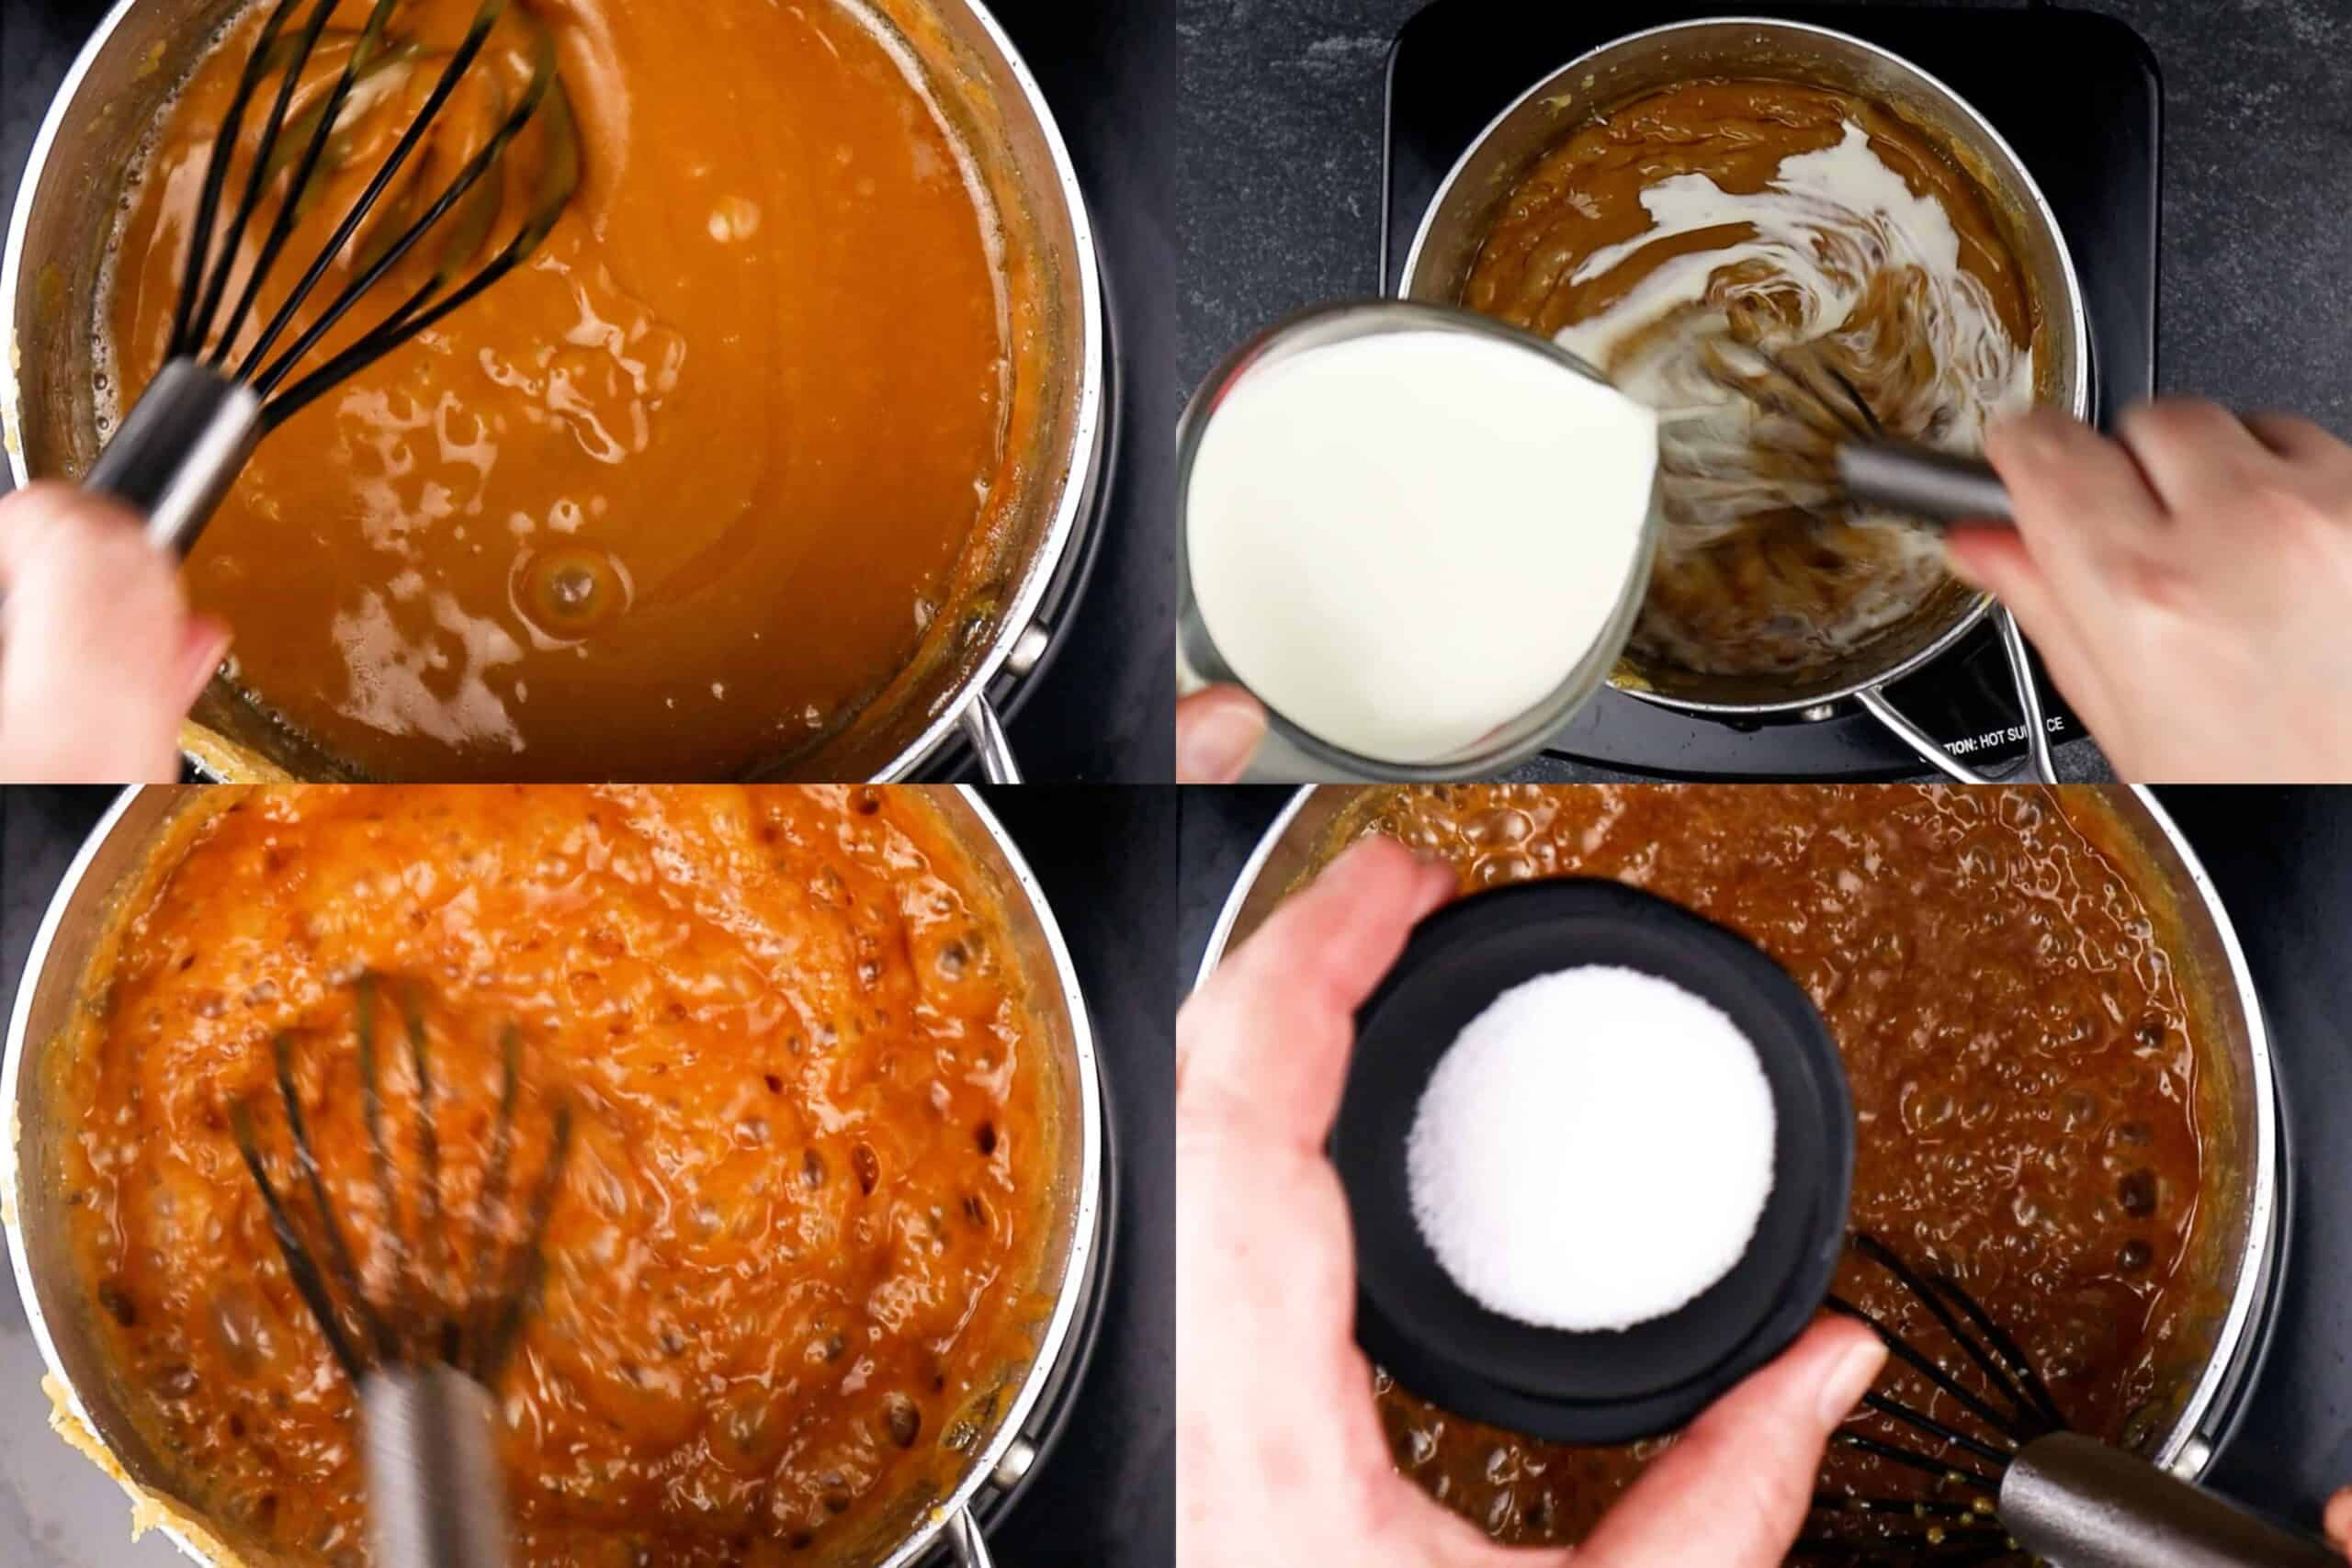 Adding cream and salt to melted sugar